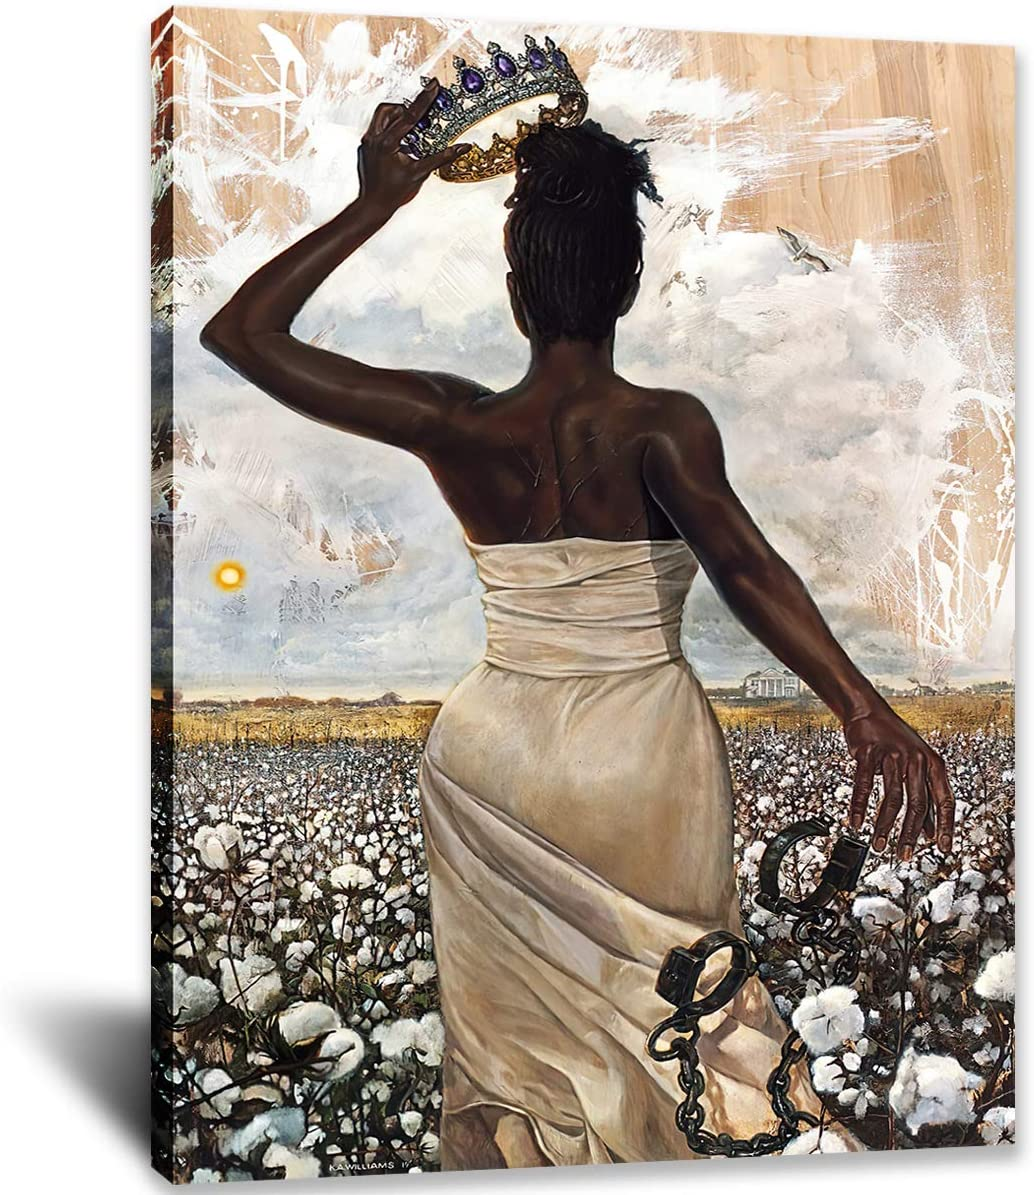 IXMAH the Queen latest Was Free African Black Gir Poster American Woman Max 83% OFF